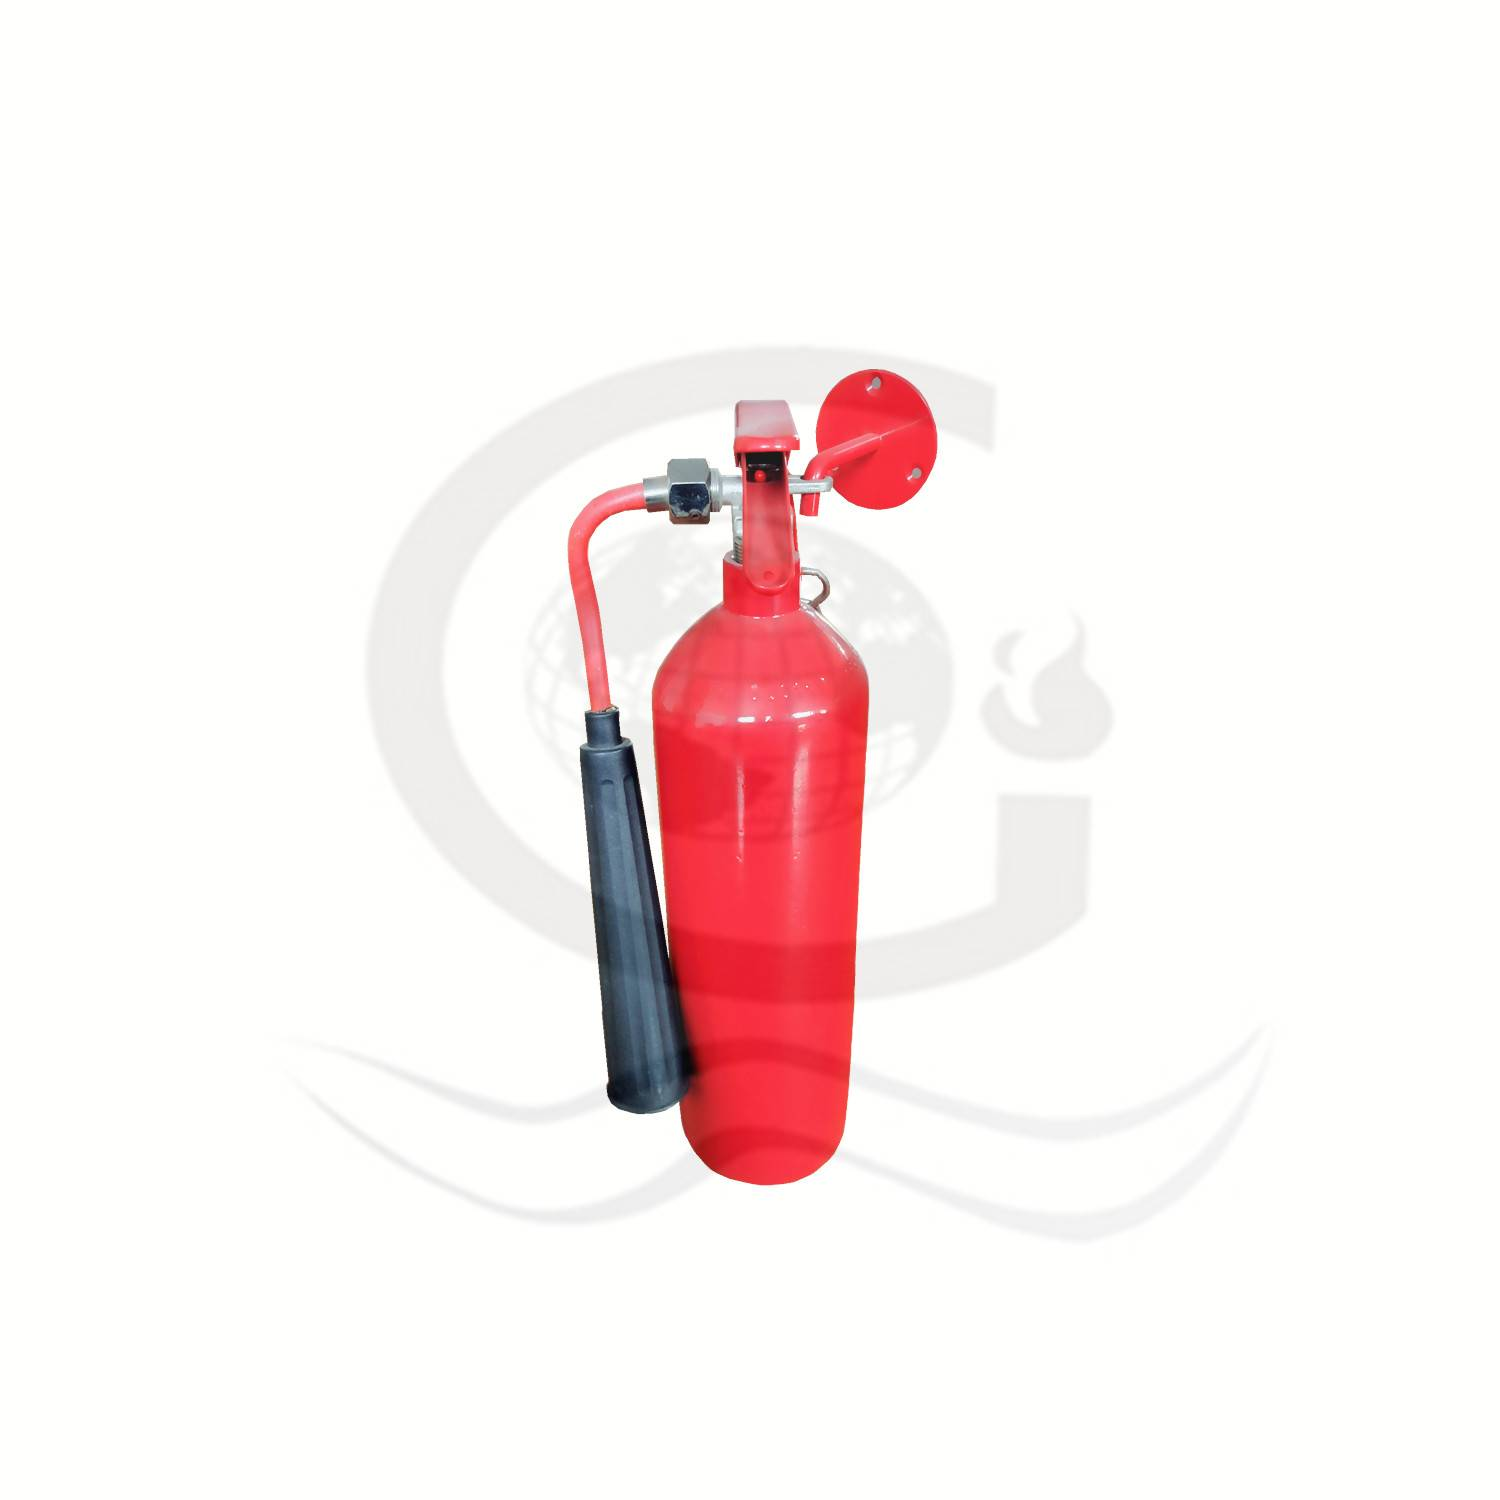 2020 wholesale price Bs Fire Hydrant Bs750 - Co2 fire extinguisher  – World Fire Fighting Equipment